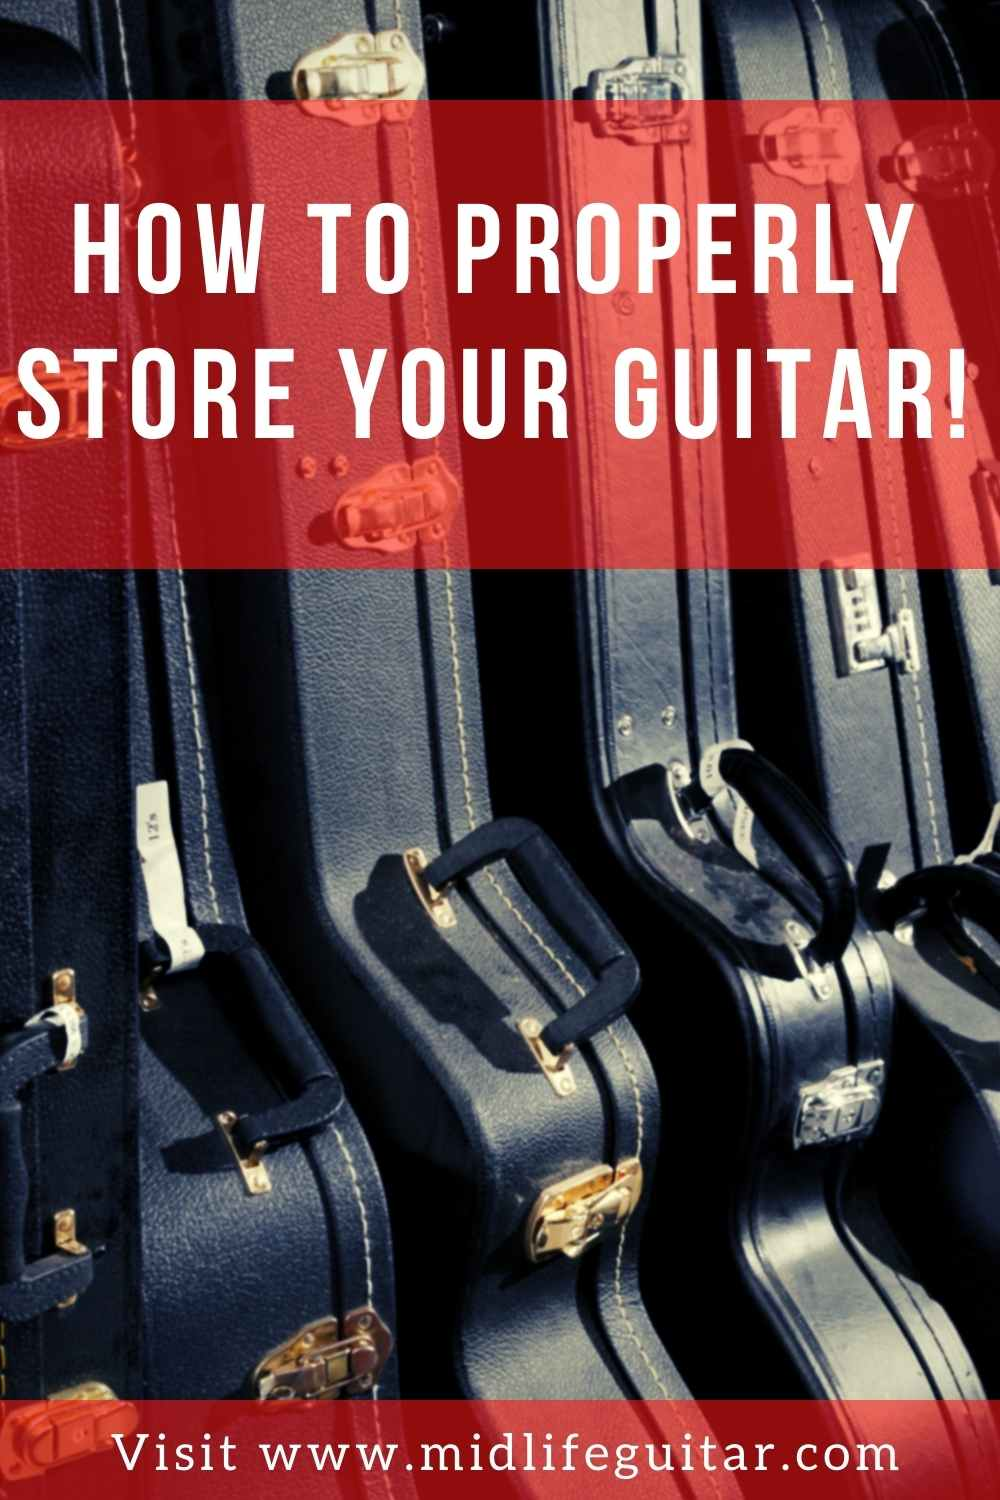 Guitars store properly upright and in a hard case